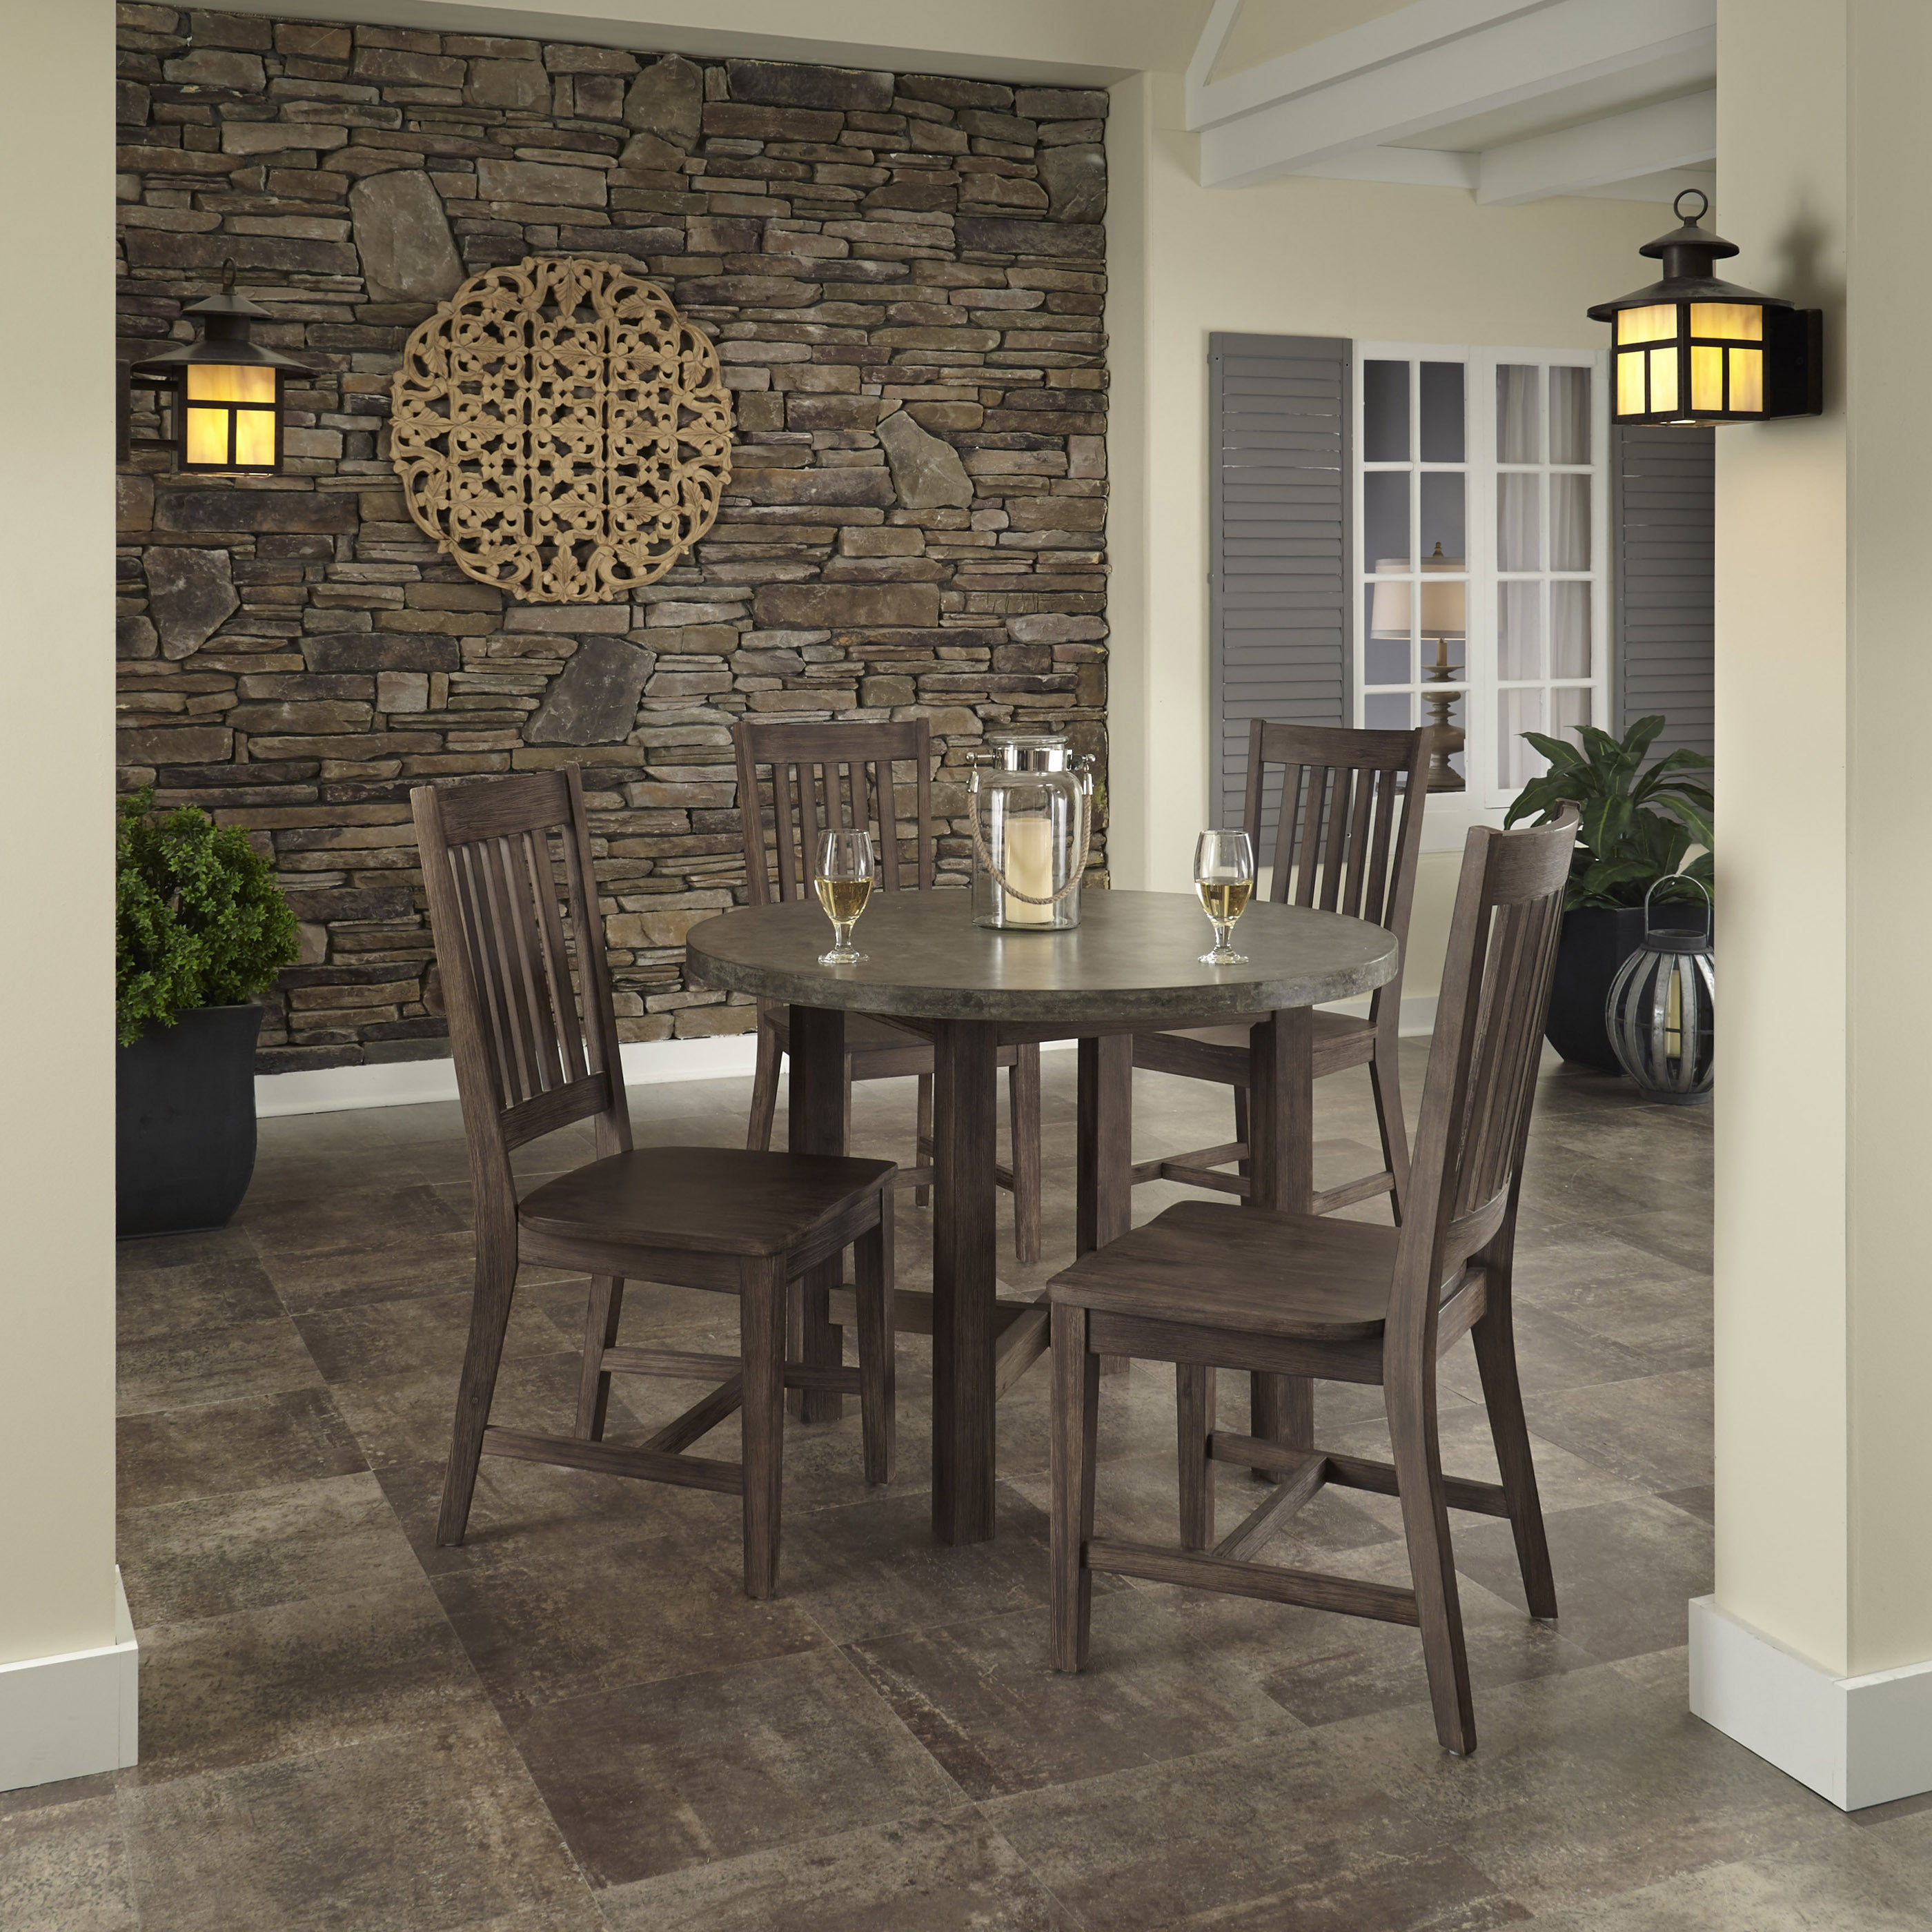 Saddle Brown Round Table And 4 Kitchen Chairs 5 Piece: Shop Concrete Chic 5-piece Dining Set By Home Styles